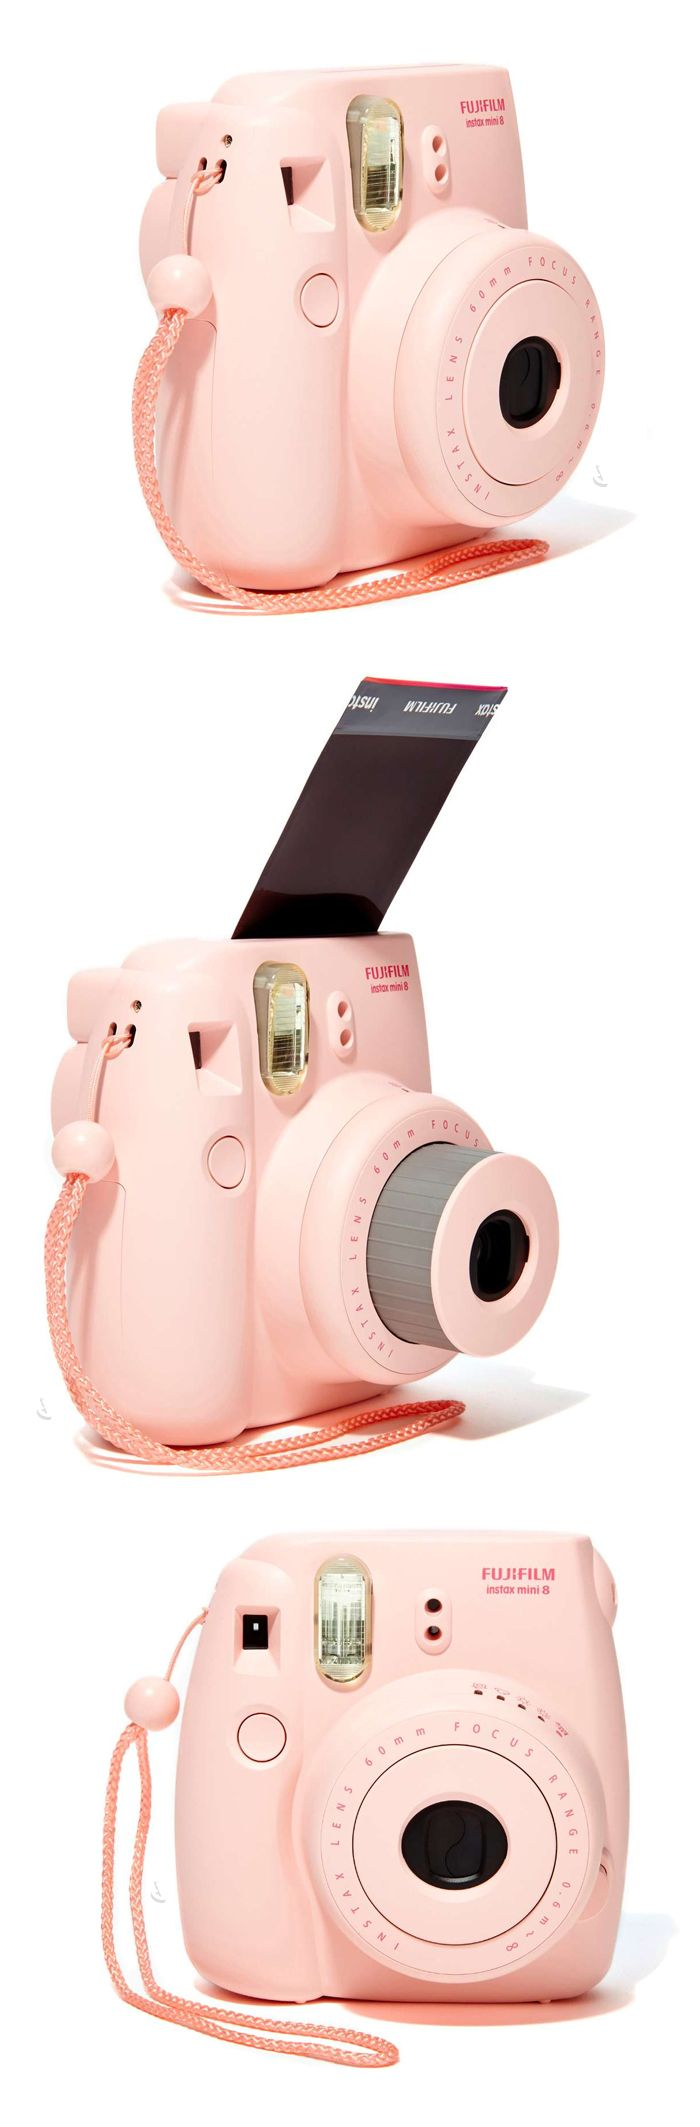 Fujifilm Instax Mini 8 Instant Camera // instant Polaroid photos are so fun!